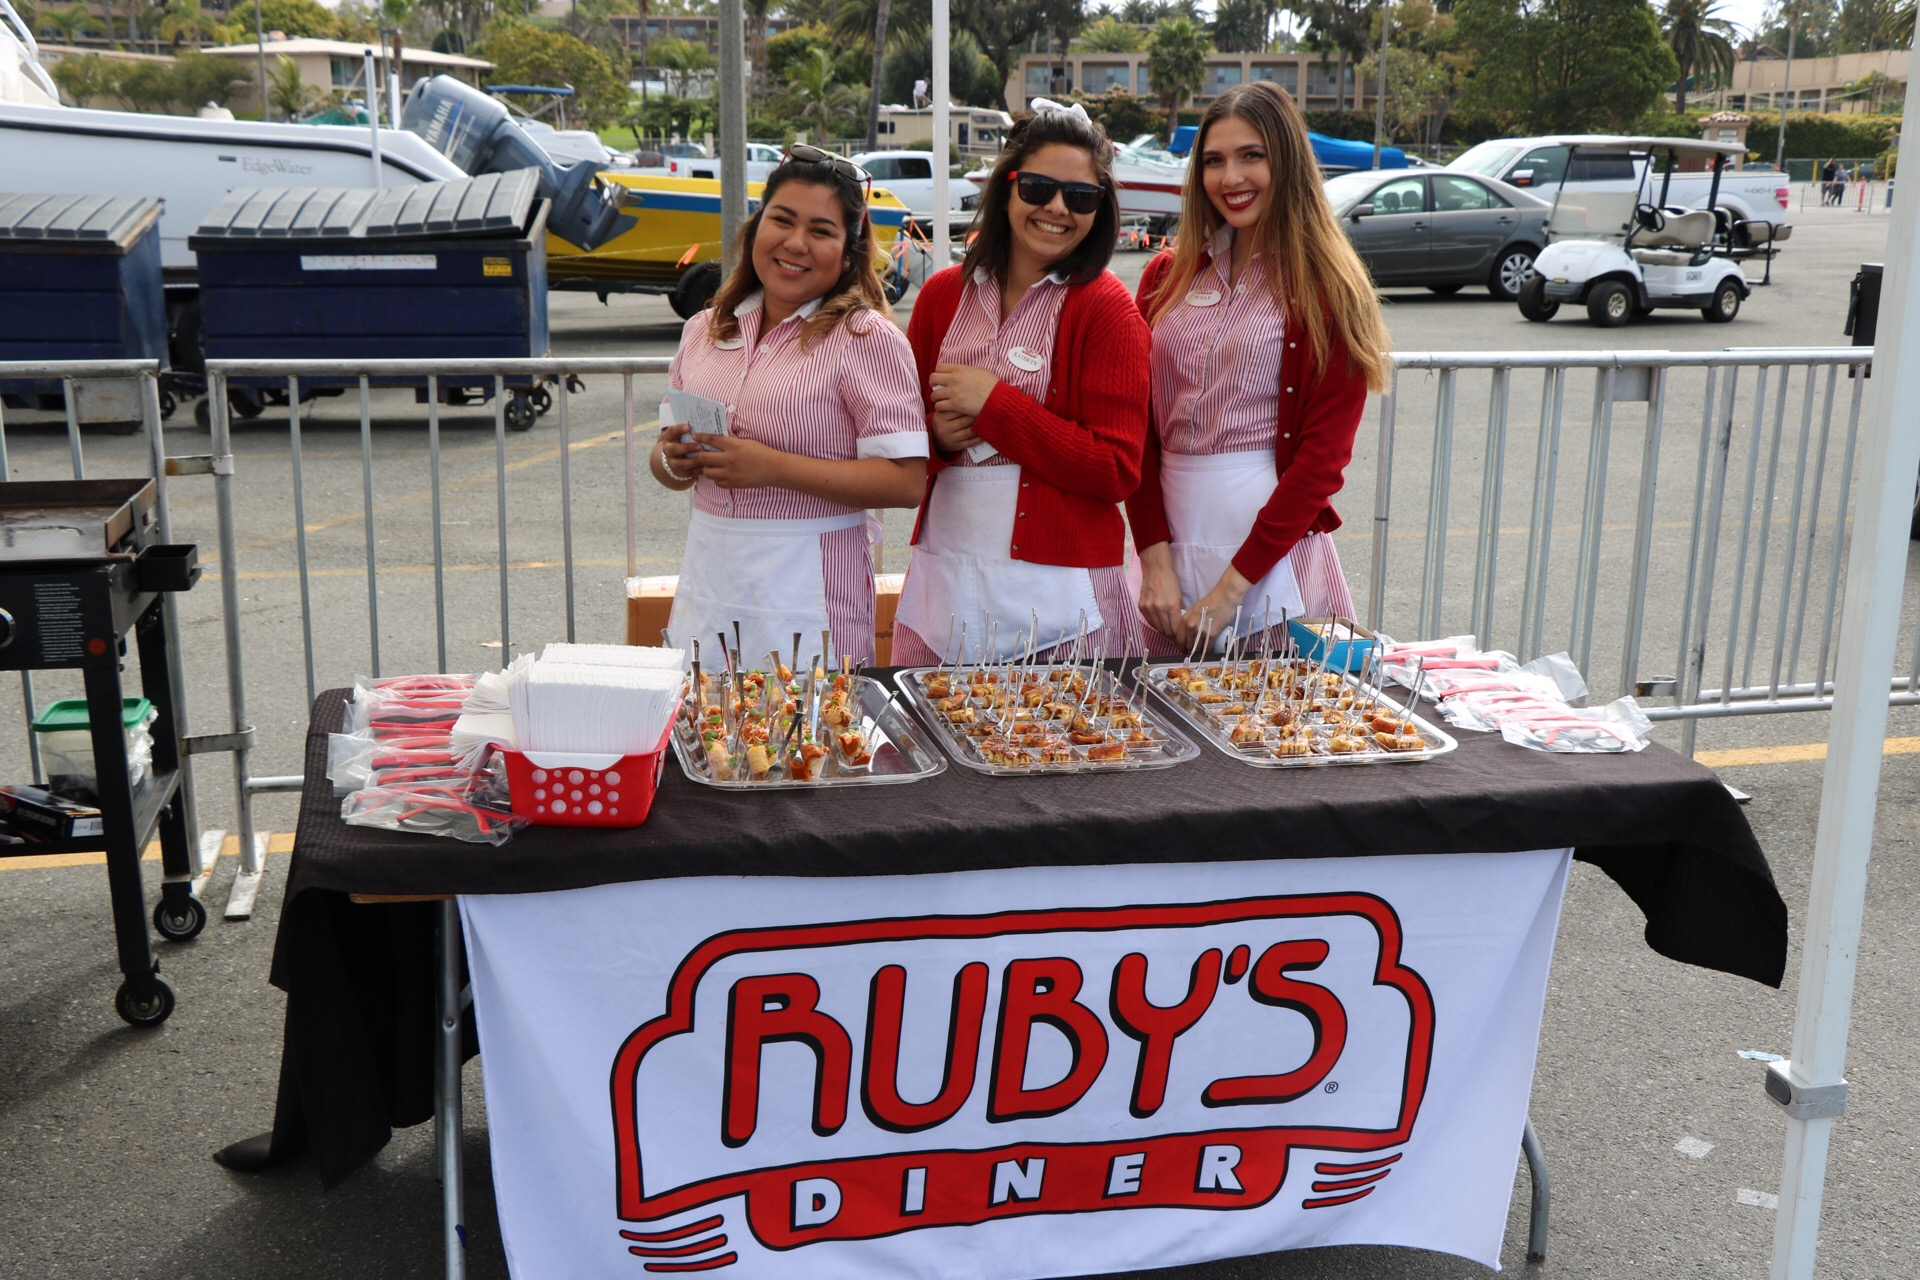 Ruby S Diner Food Truck